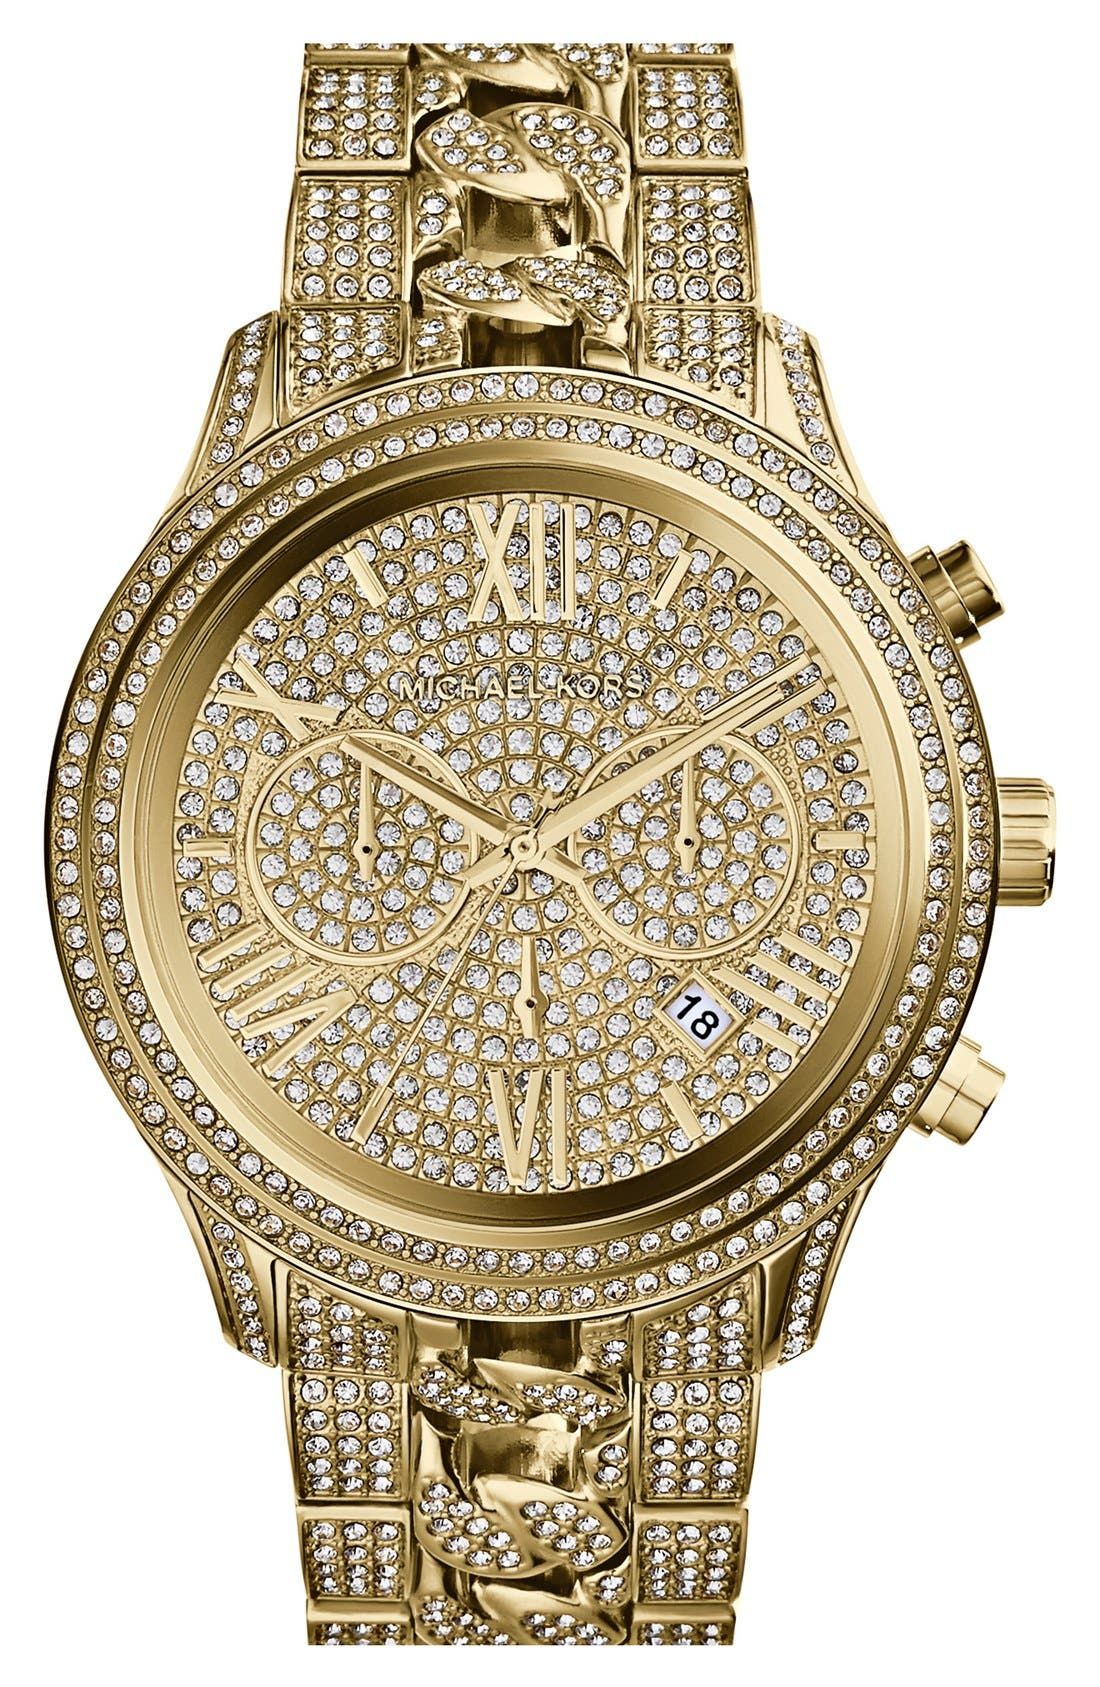 Main Image - Michael Kors 'Lindley' Pavé Chronograph Bracelet Watch, 48mm